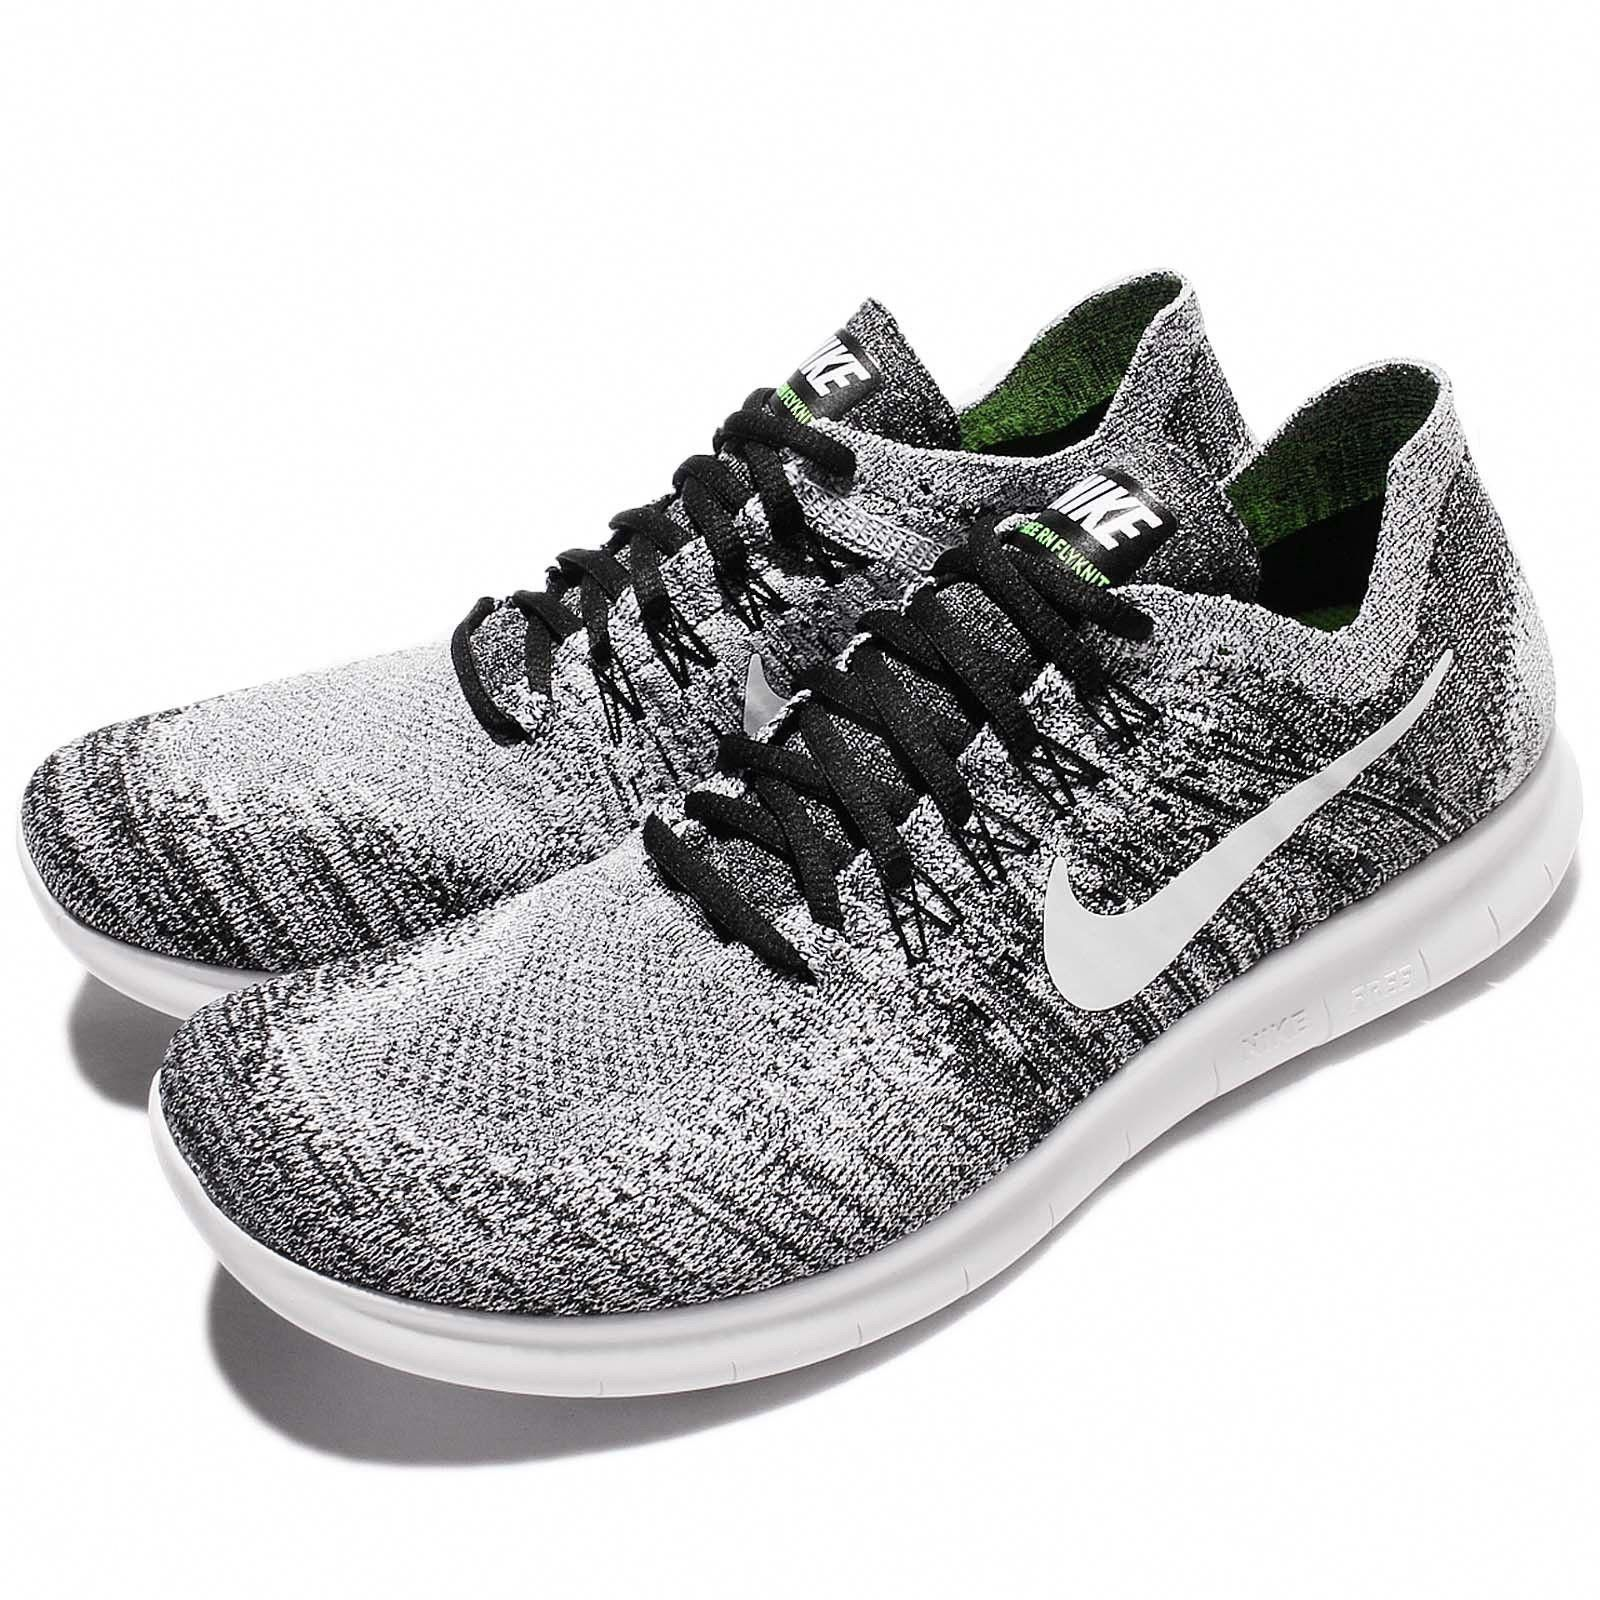 4f3e9f465aca Nike Free RN Flyknit 2017 White Black Men Running Shoes Sneakers 880843-003   RunningShoes